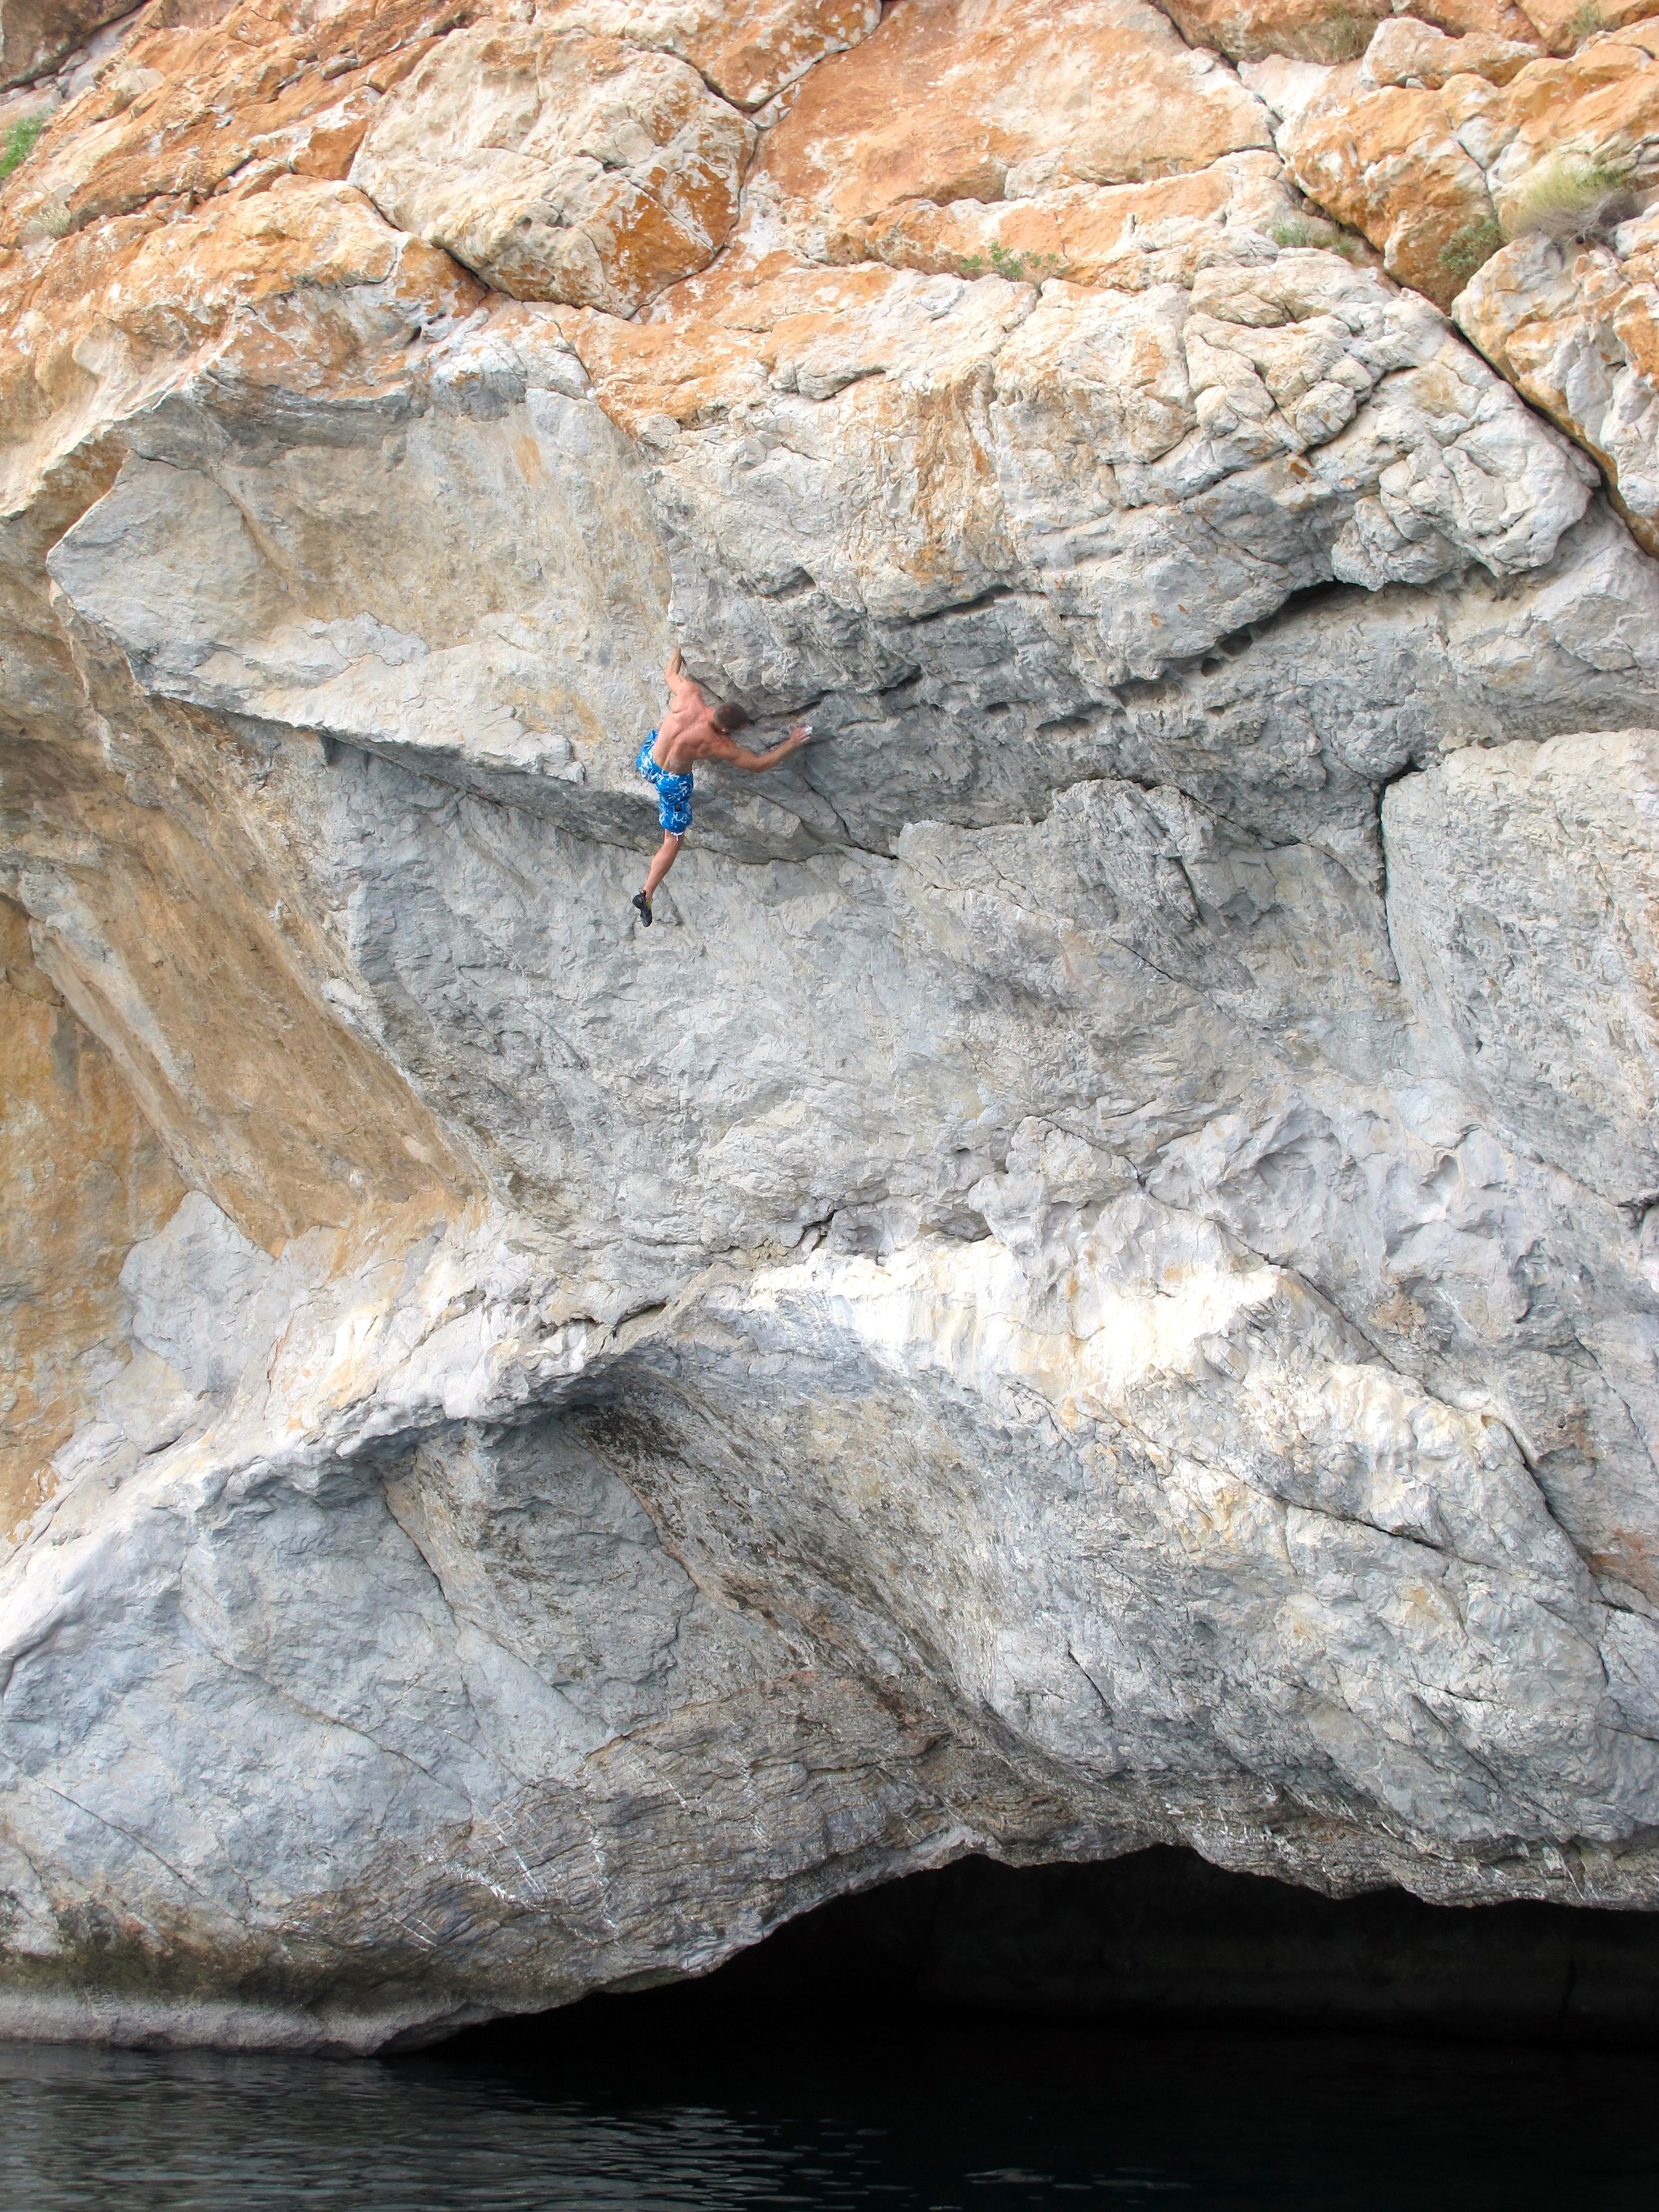 Generation X 7b+, Gen's Cave, Dibba, First ascent in 2011.  Photo: Gresham collection.